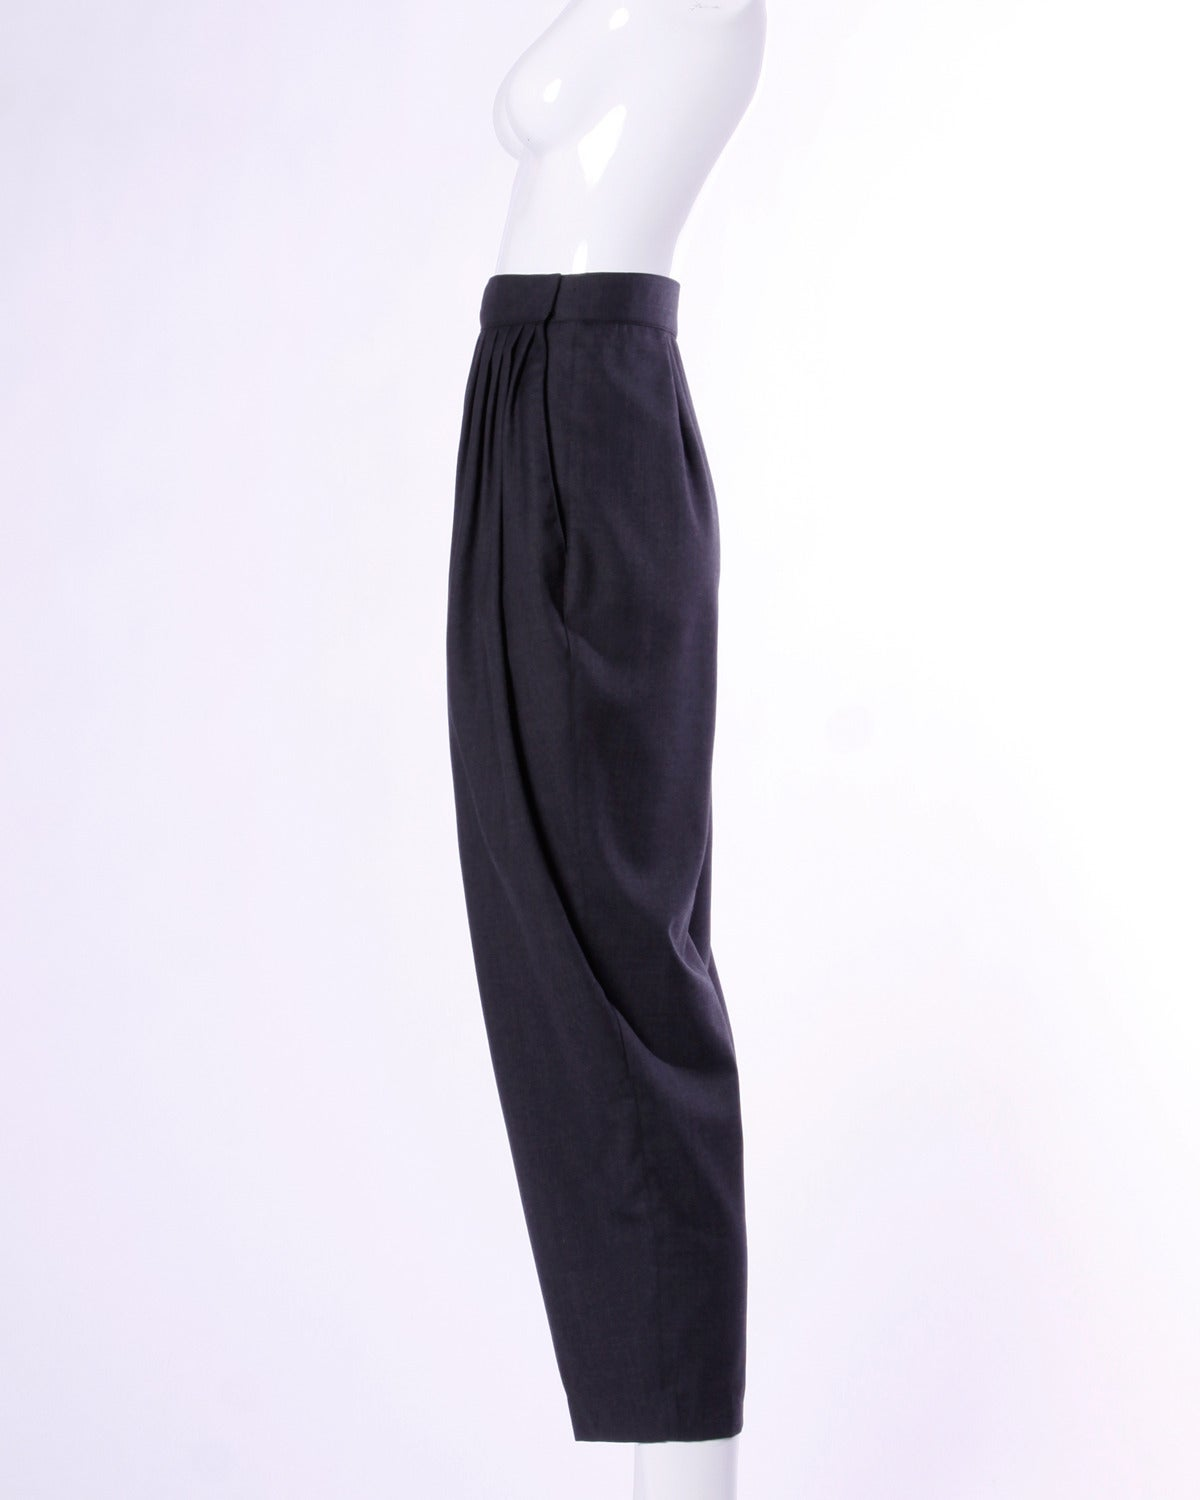 Gianni Versace Vintage 1980s 80s Gray Wool Pleated Pants or Trousers 5